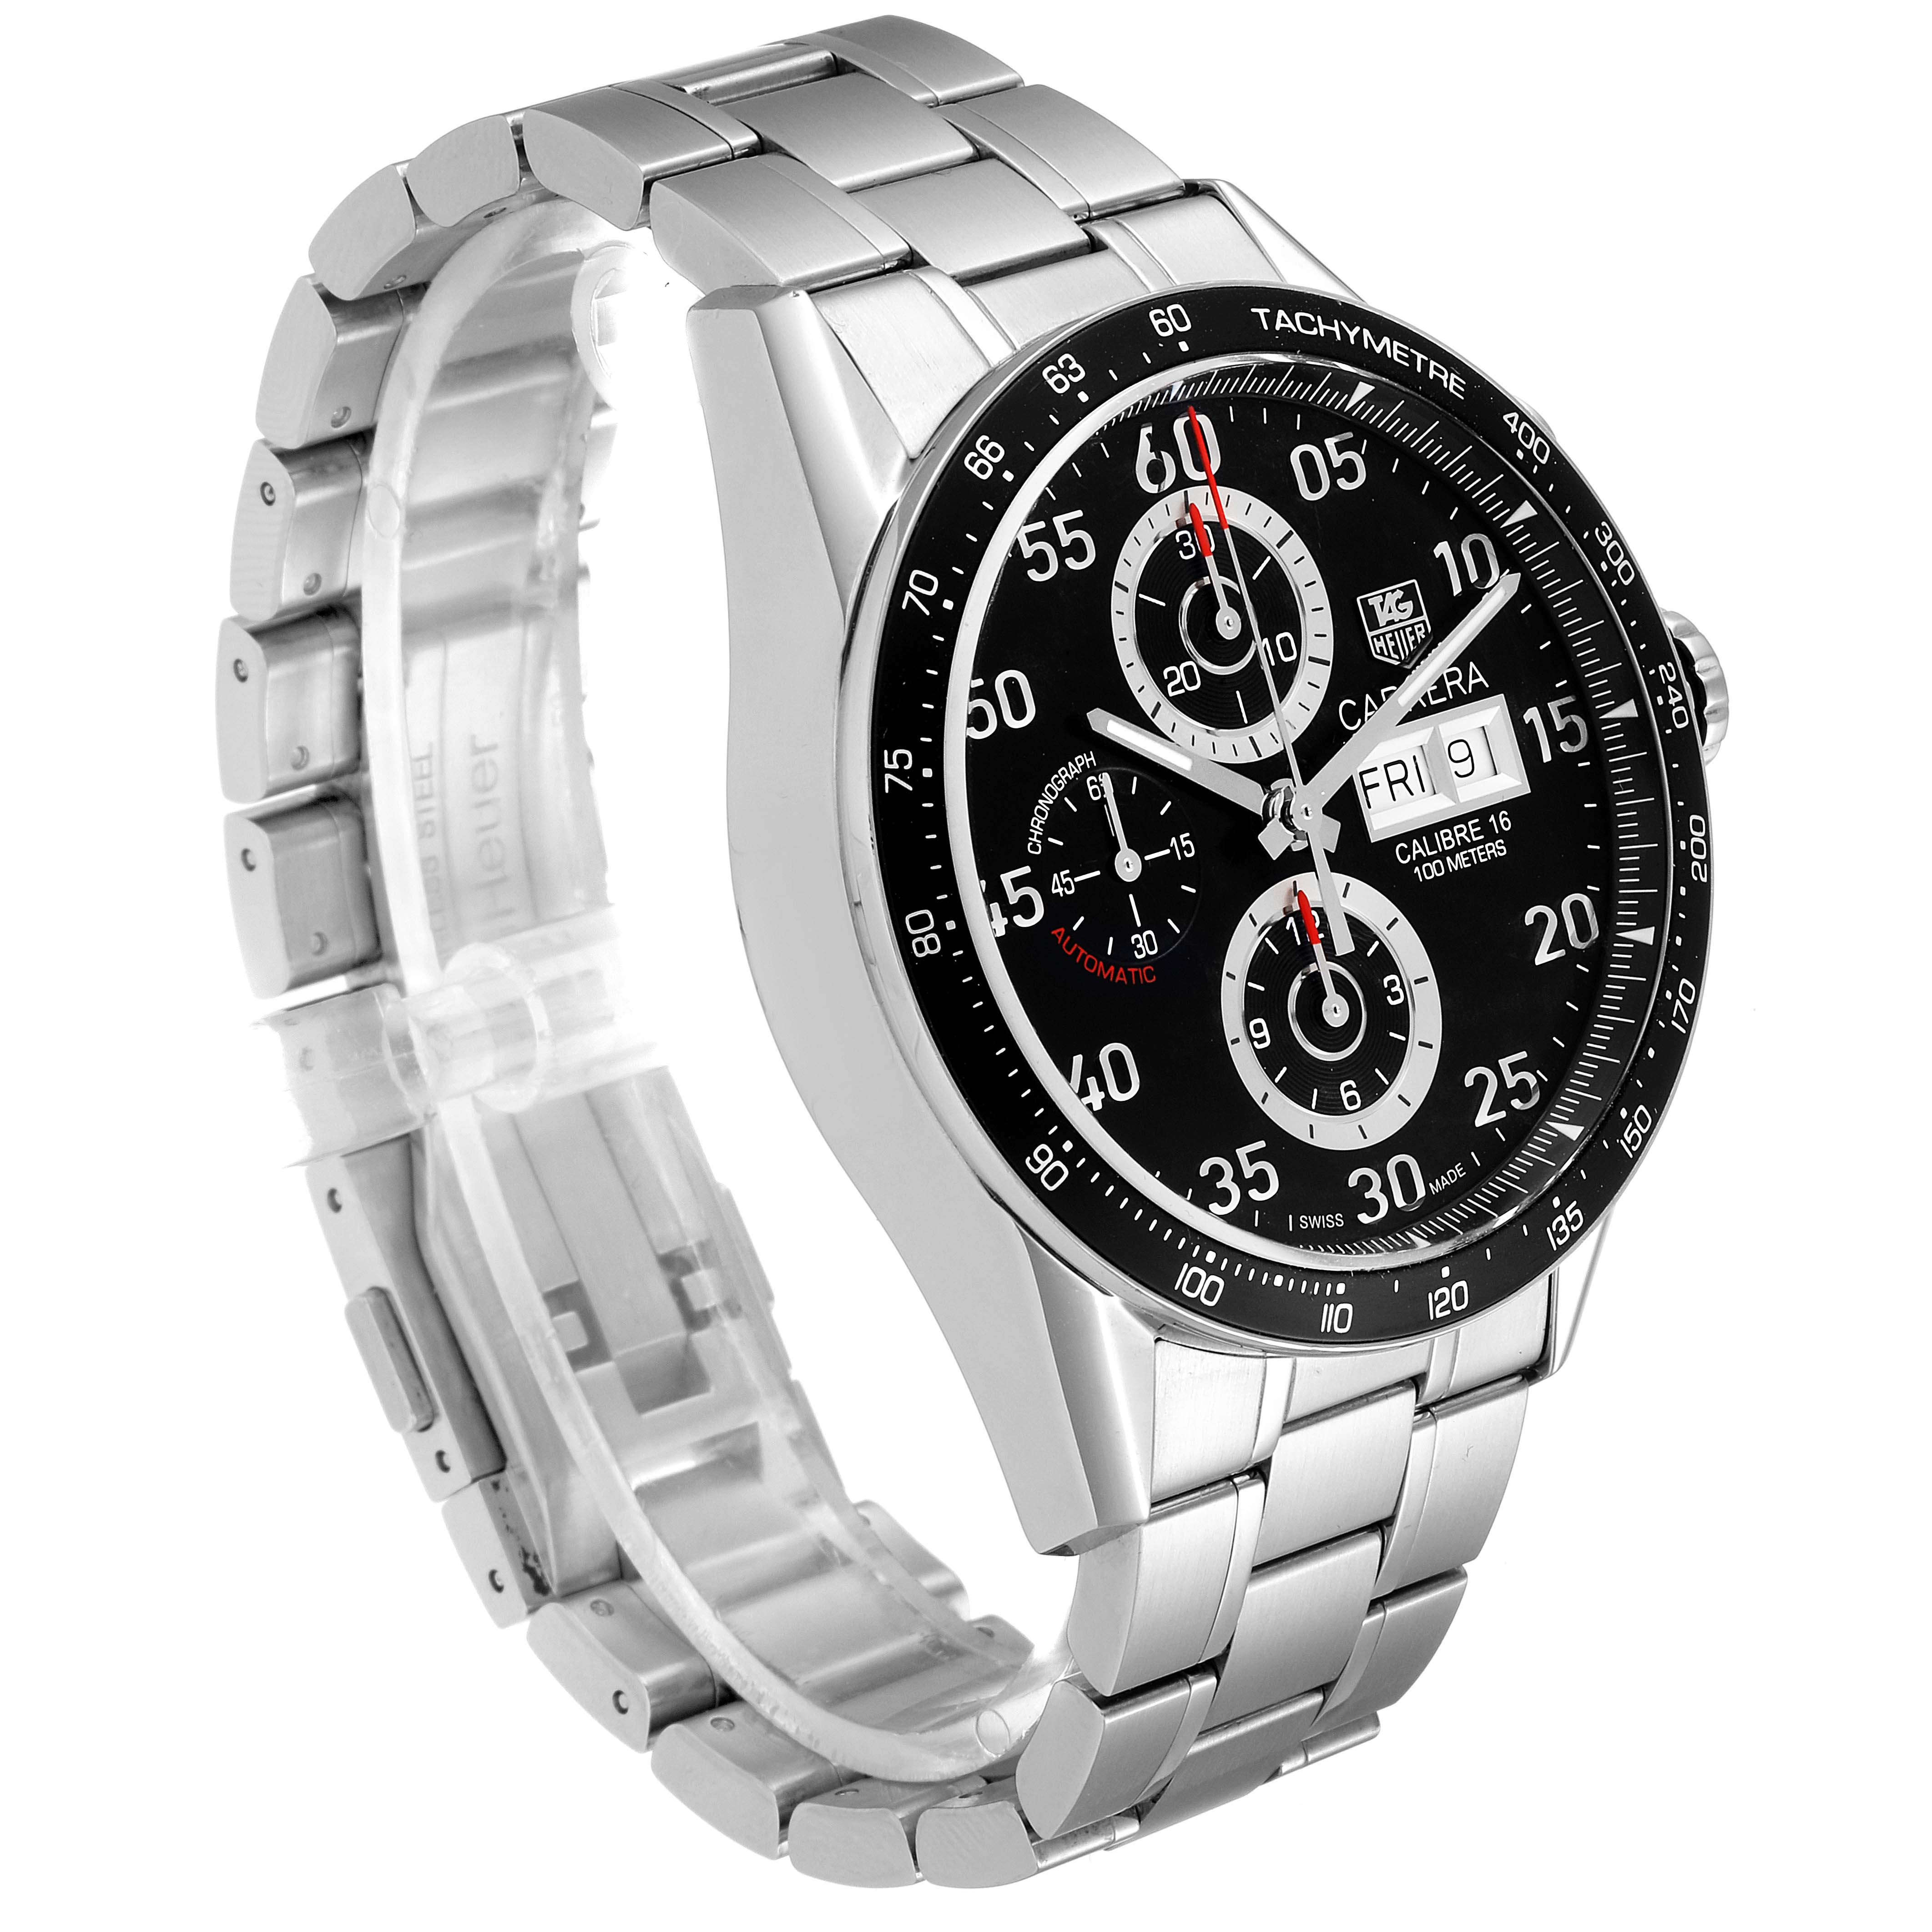 Tag Heuer Carrera Day Date Chronograph Steel Mens Watch CV2A10 Box Card SwissWatchExpo